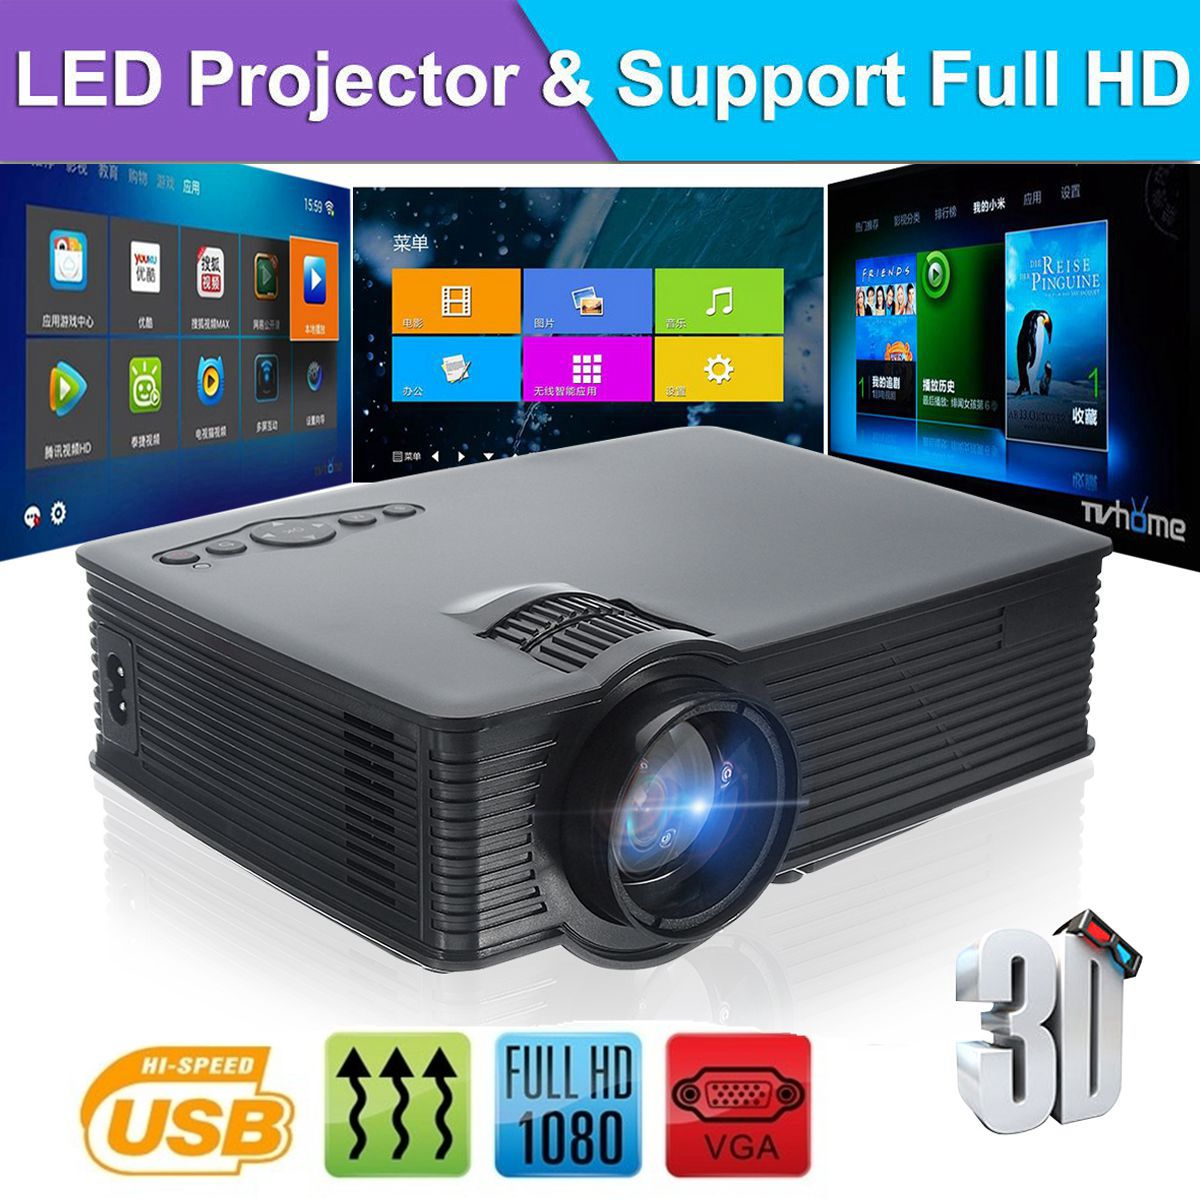 Cl720 3000 Lumens Hd Home Theater Multimedia Lcd Projector: Aliexpress.com : Buy Portable 3000 Lumens HD 1080P 3D